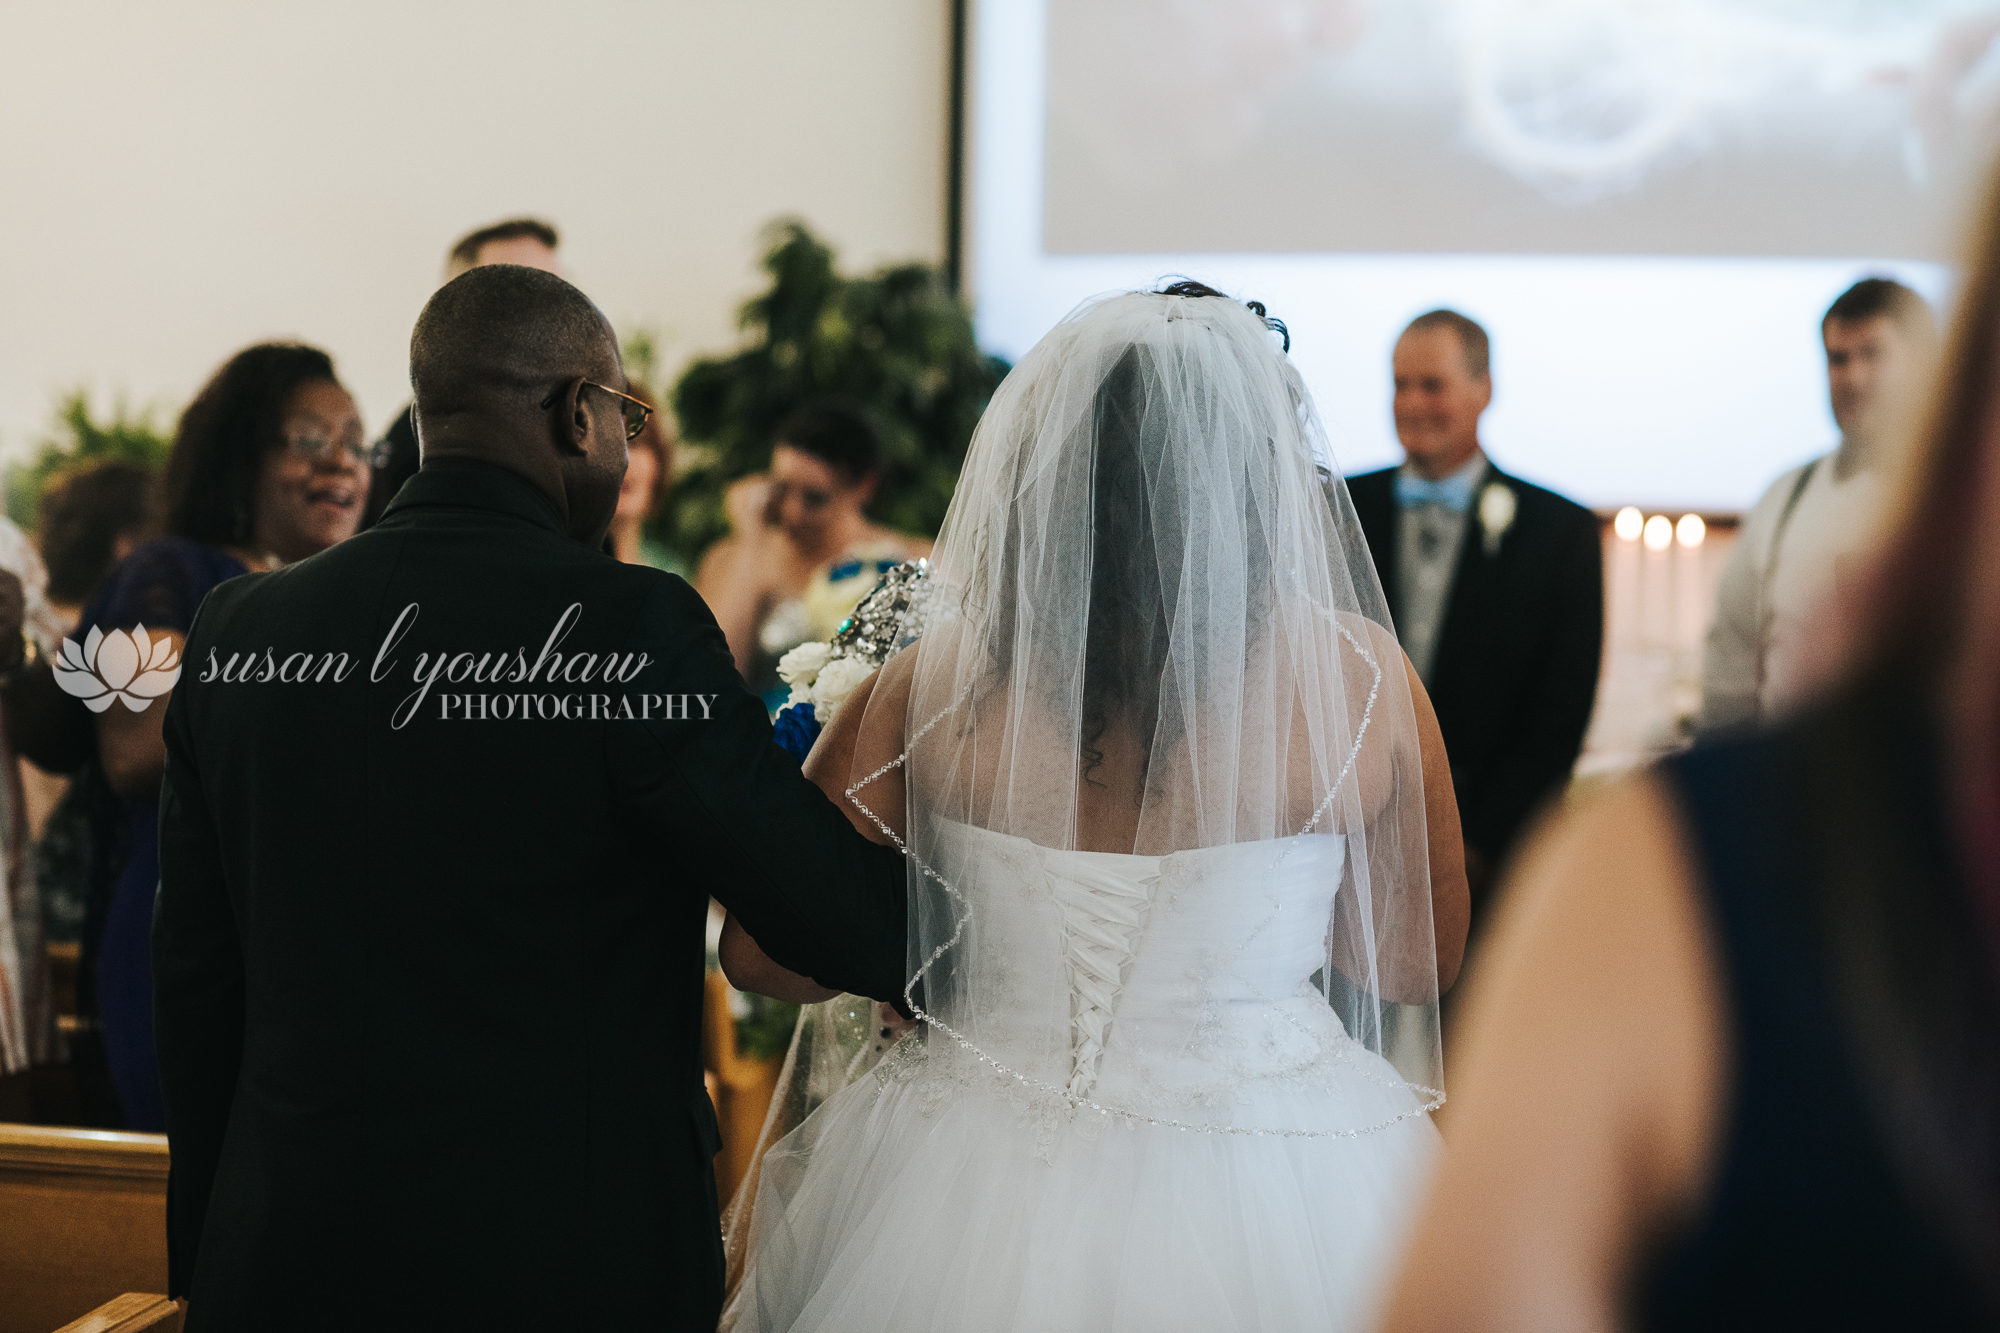 Katelyn and Wes Wedding Photos 07-13-2019 SLY Photography-44.jpg